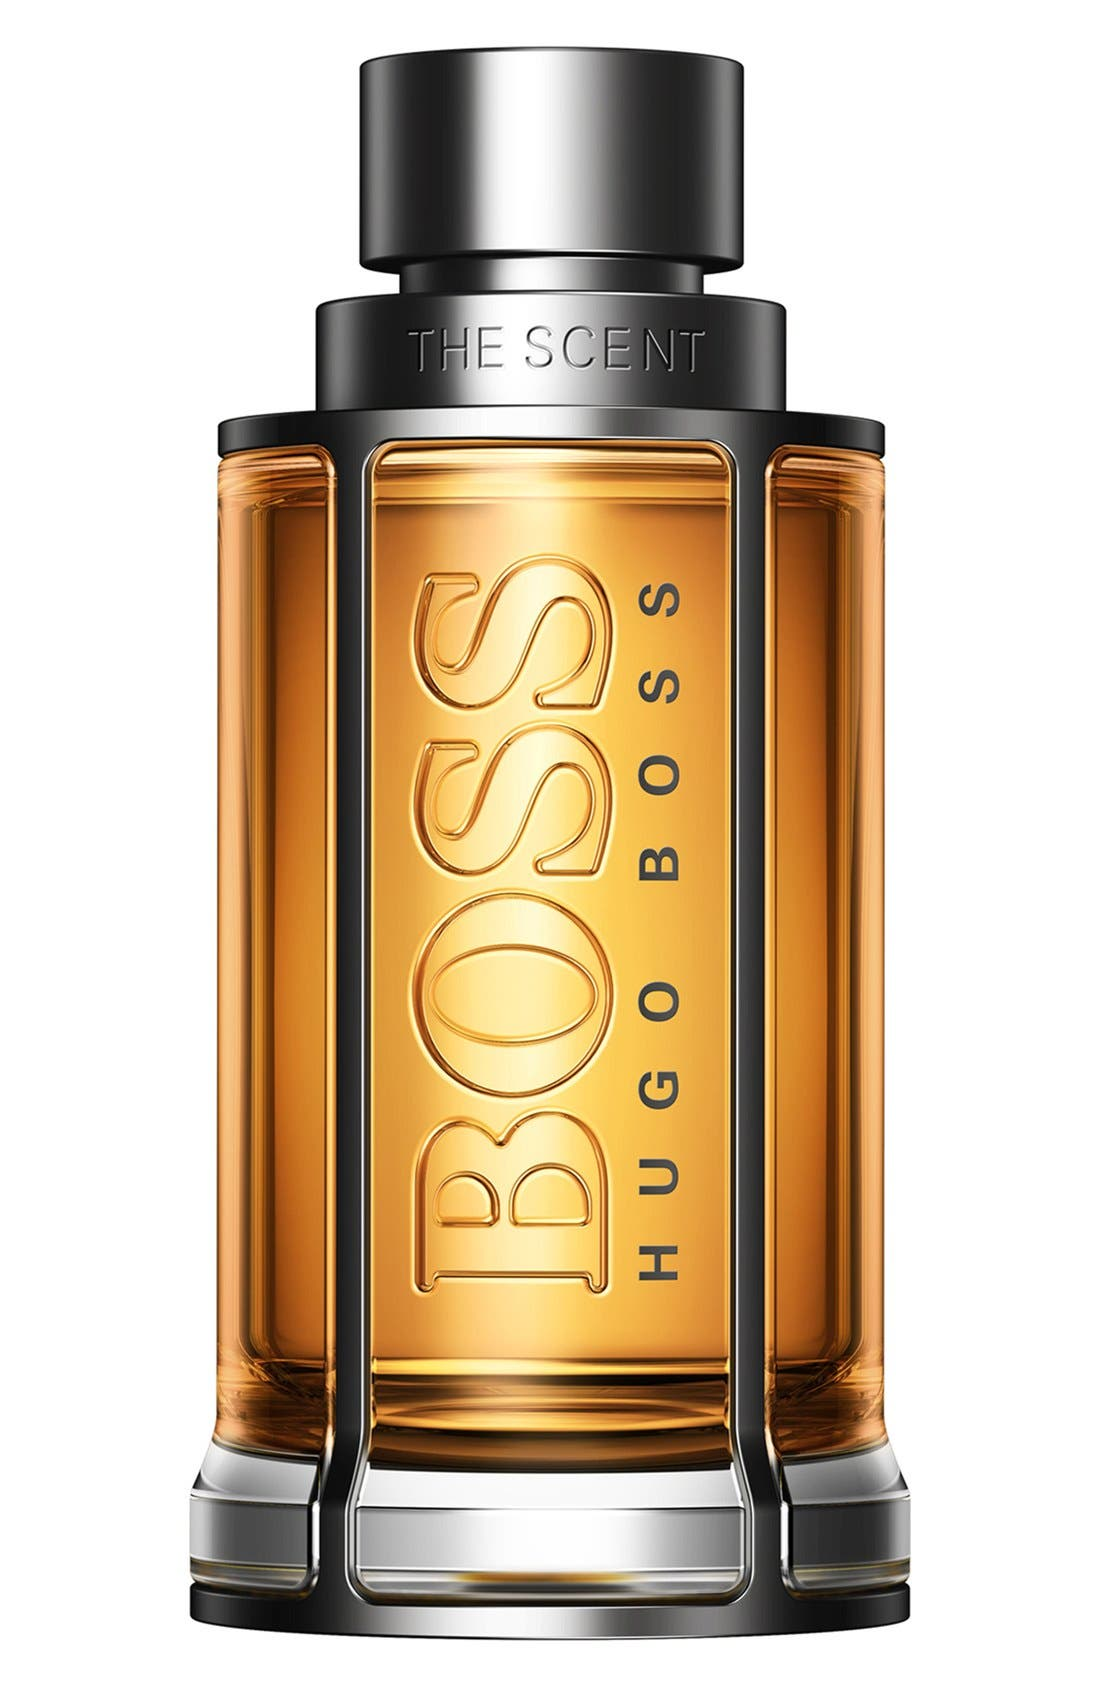 BOSS 'BOSS The Scent' Eau de Toilette